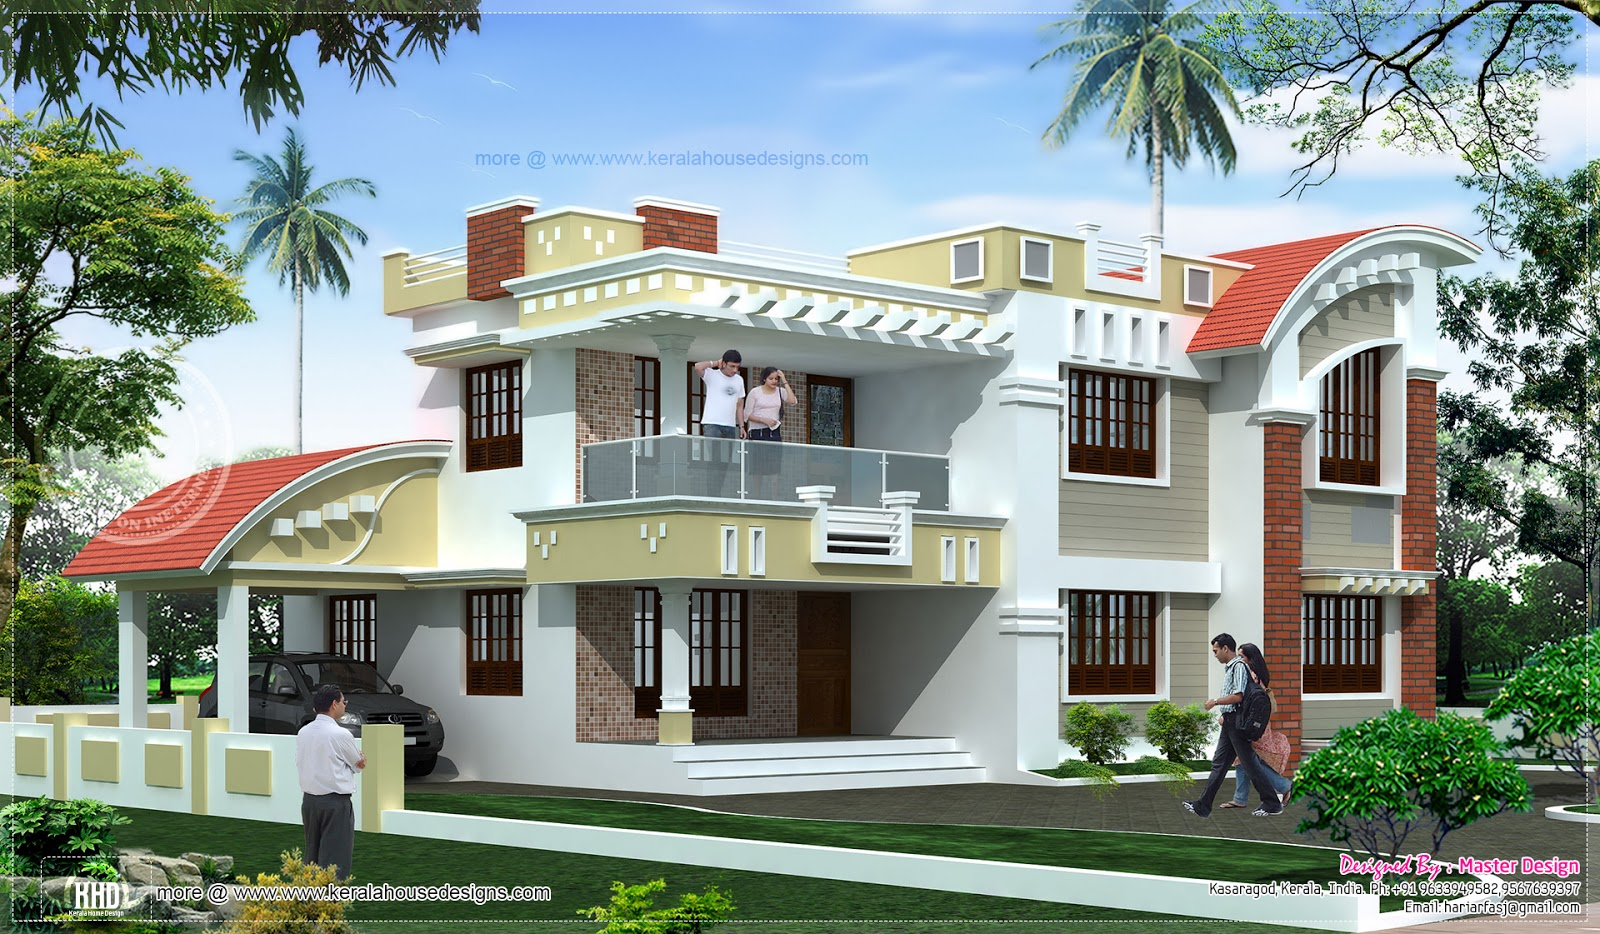 2103 double floor home exterior house design plans for Kerala home designs photos in double floor